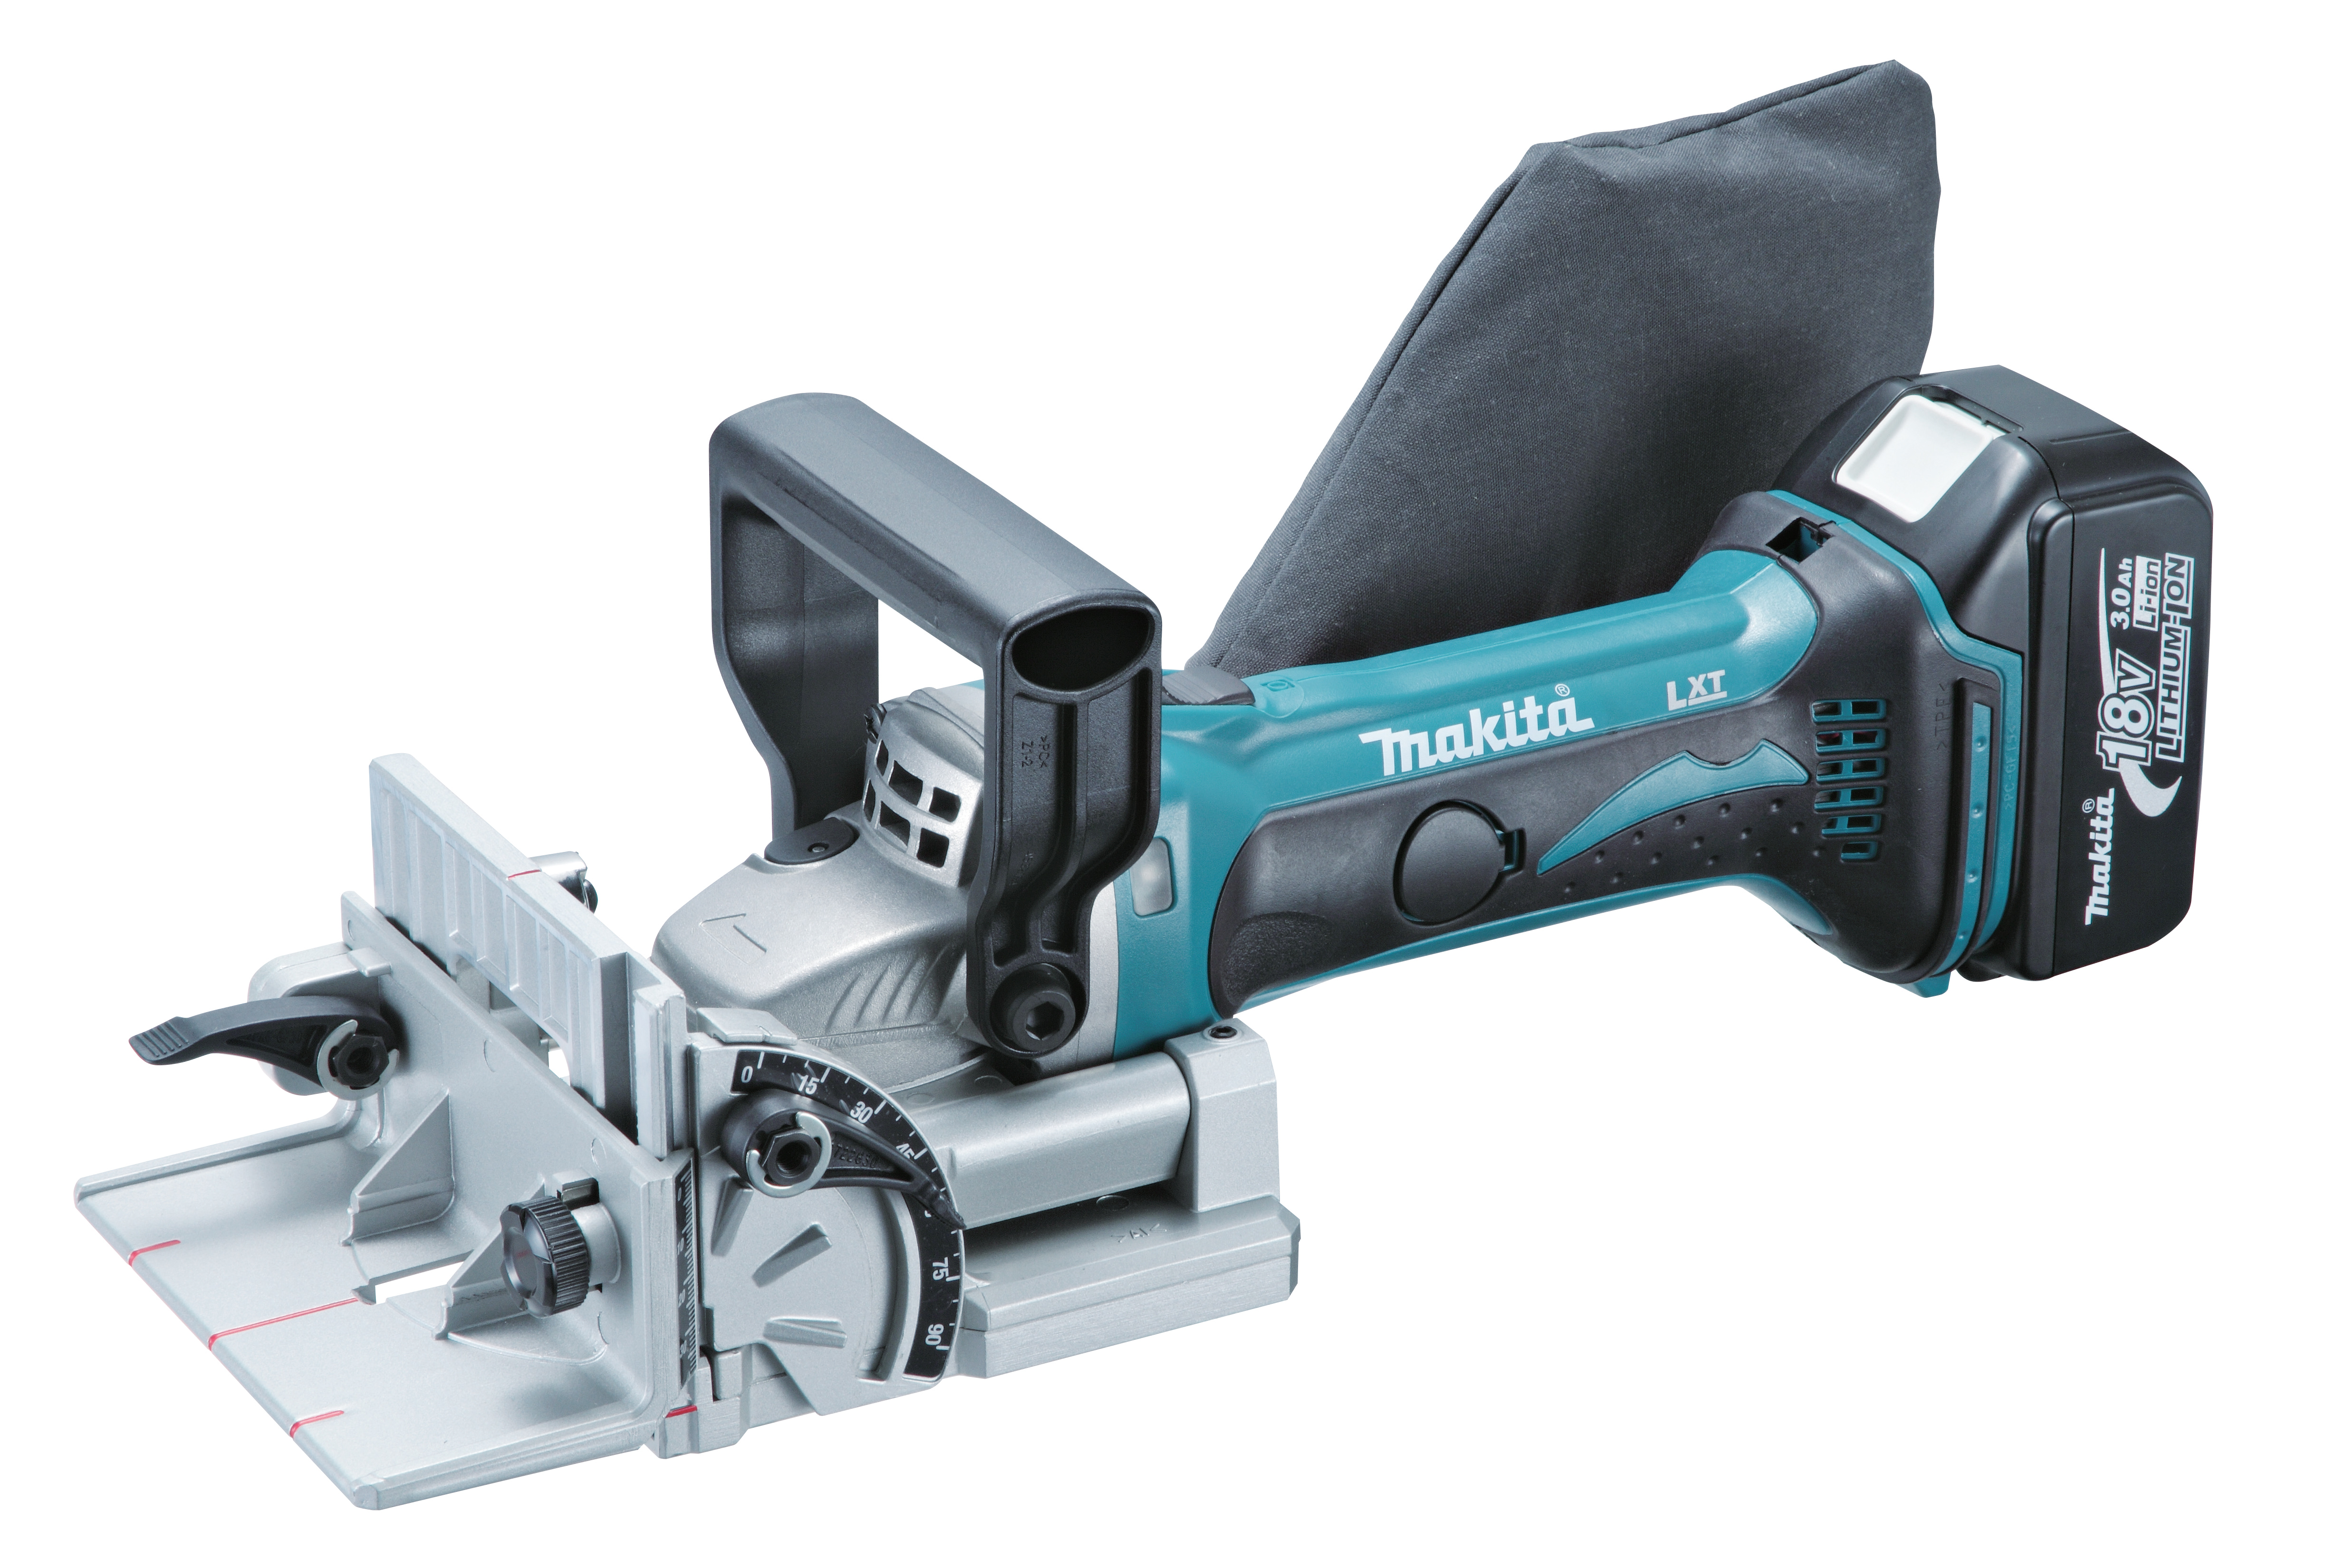 Makita Power Tools South Africa 18v Cordless Biscuit